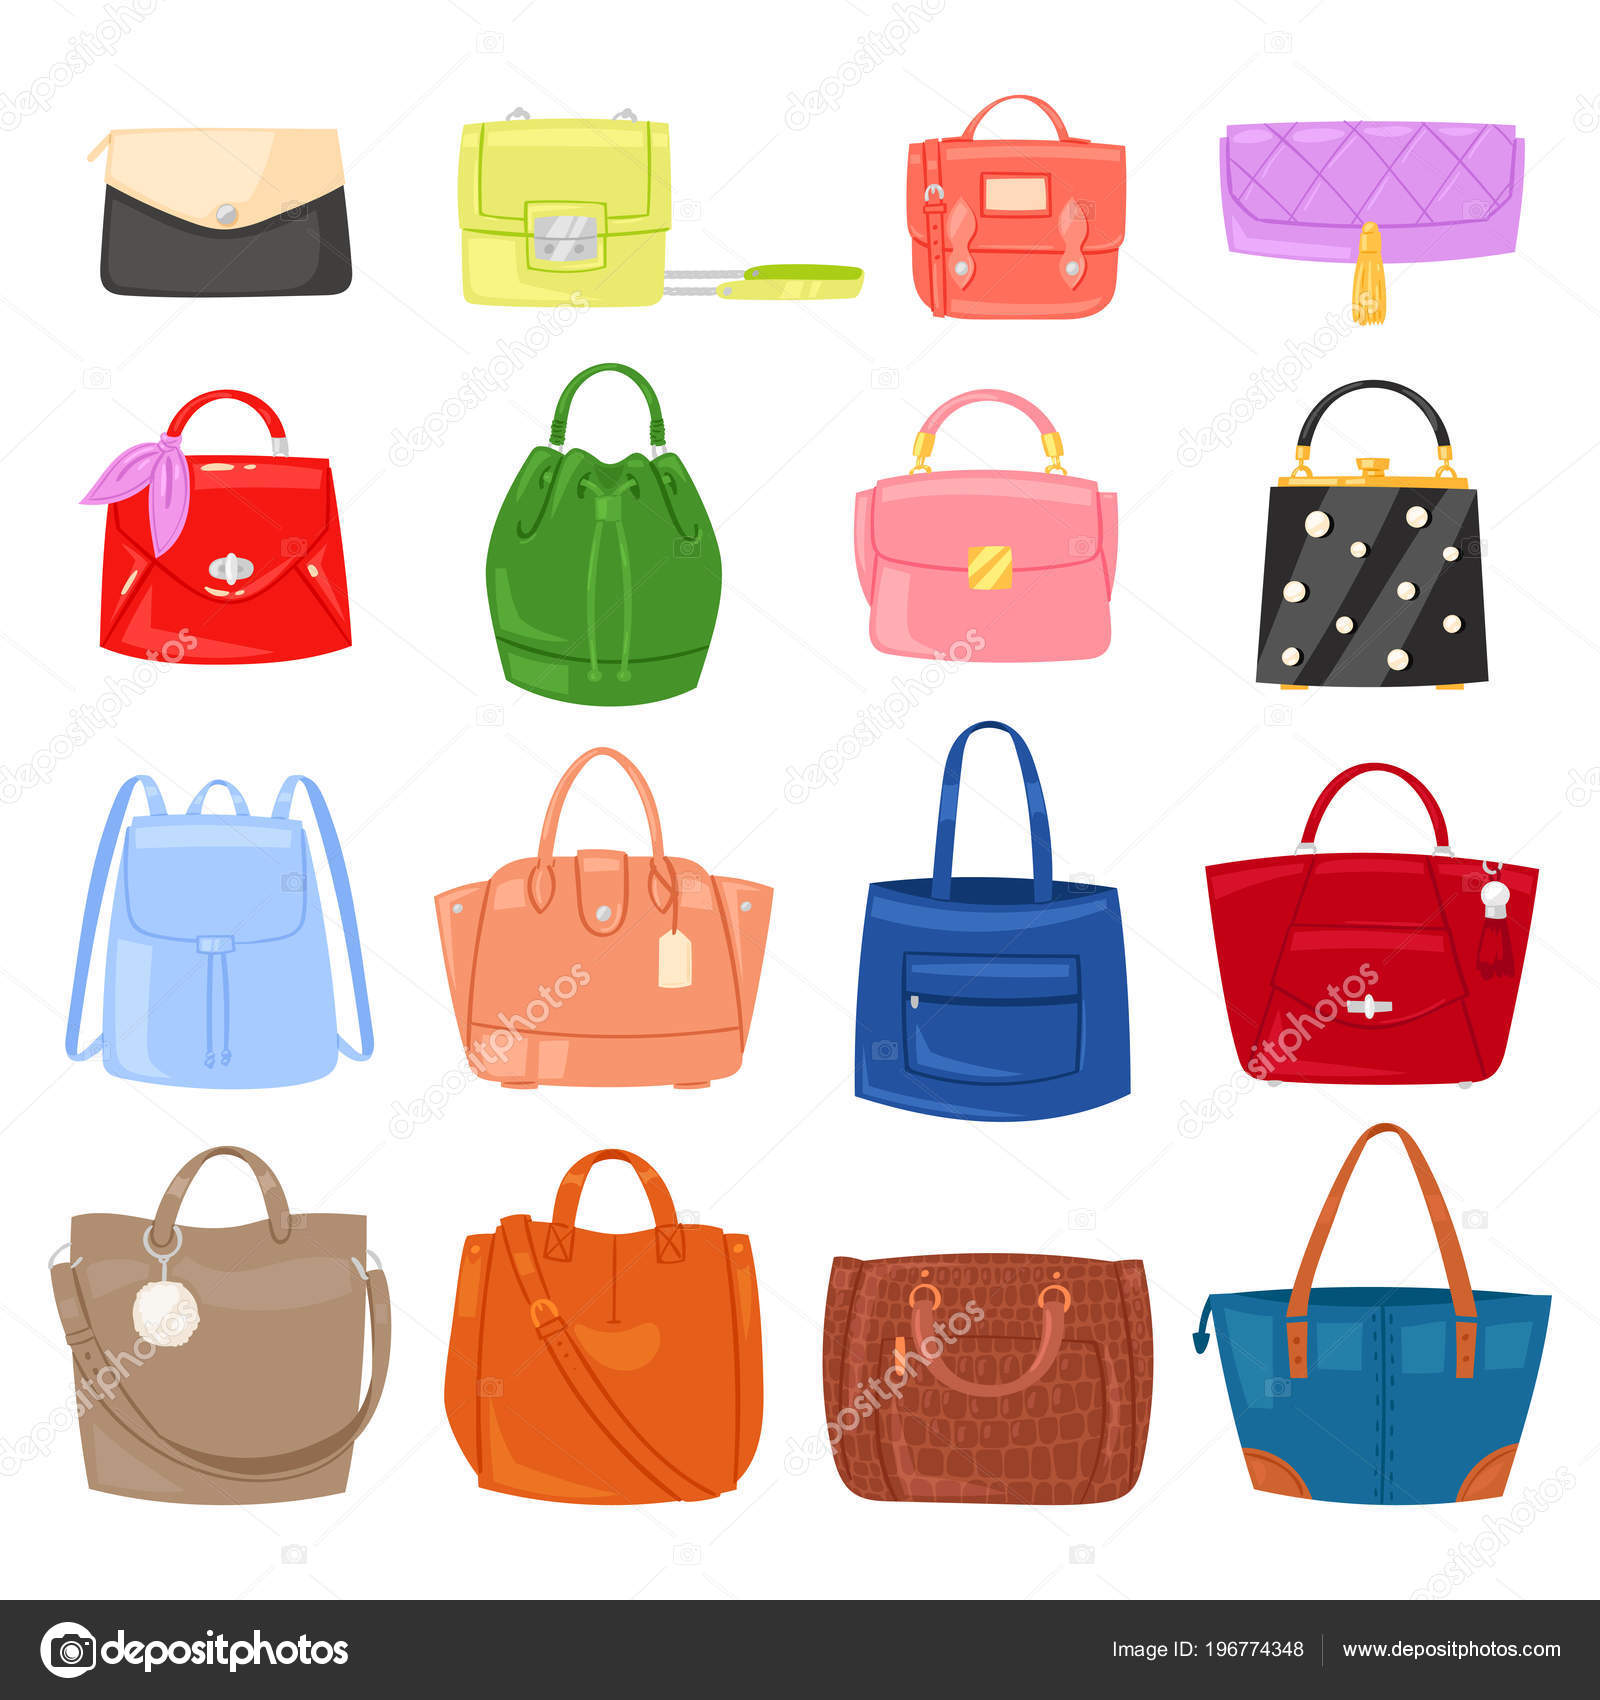 Woman bag vector girls handbag or purse and shopping-bag or clutch from fashion  store illustration baggy set of shoppers bagged package isolated on ... f22fe4734d